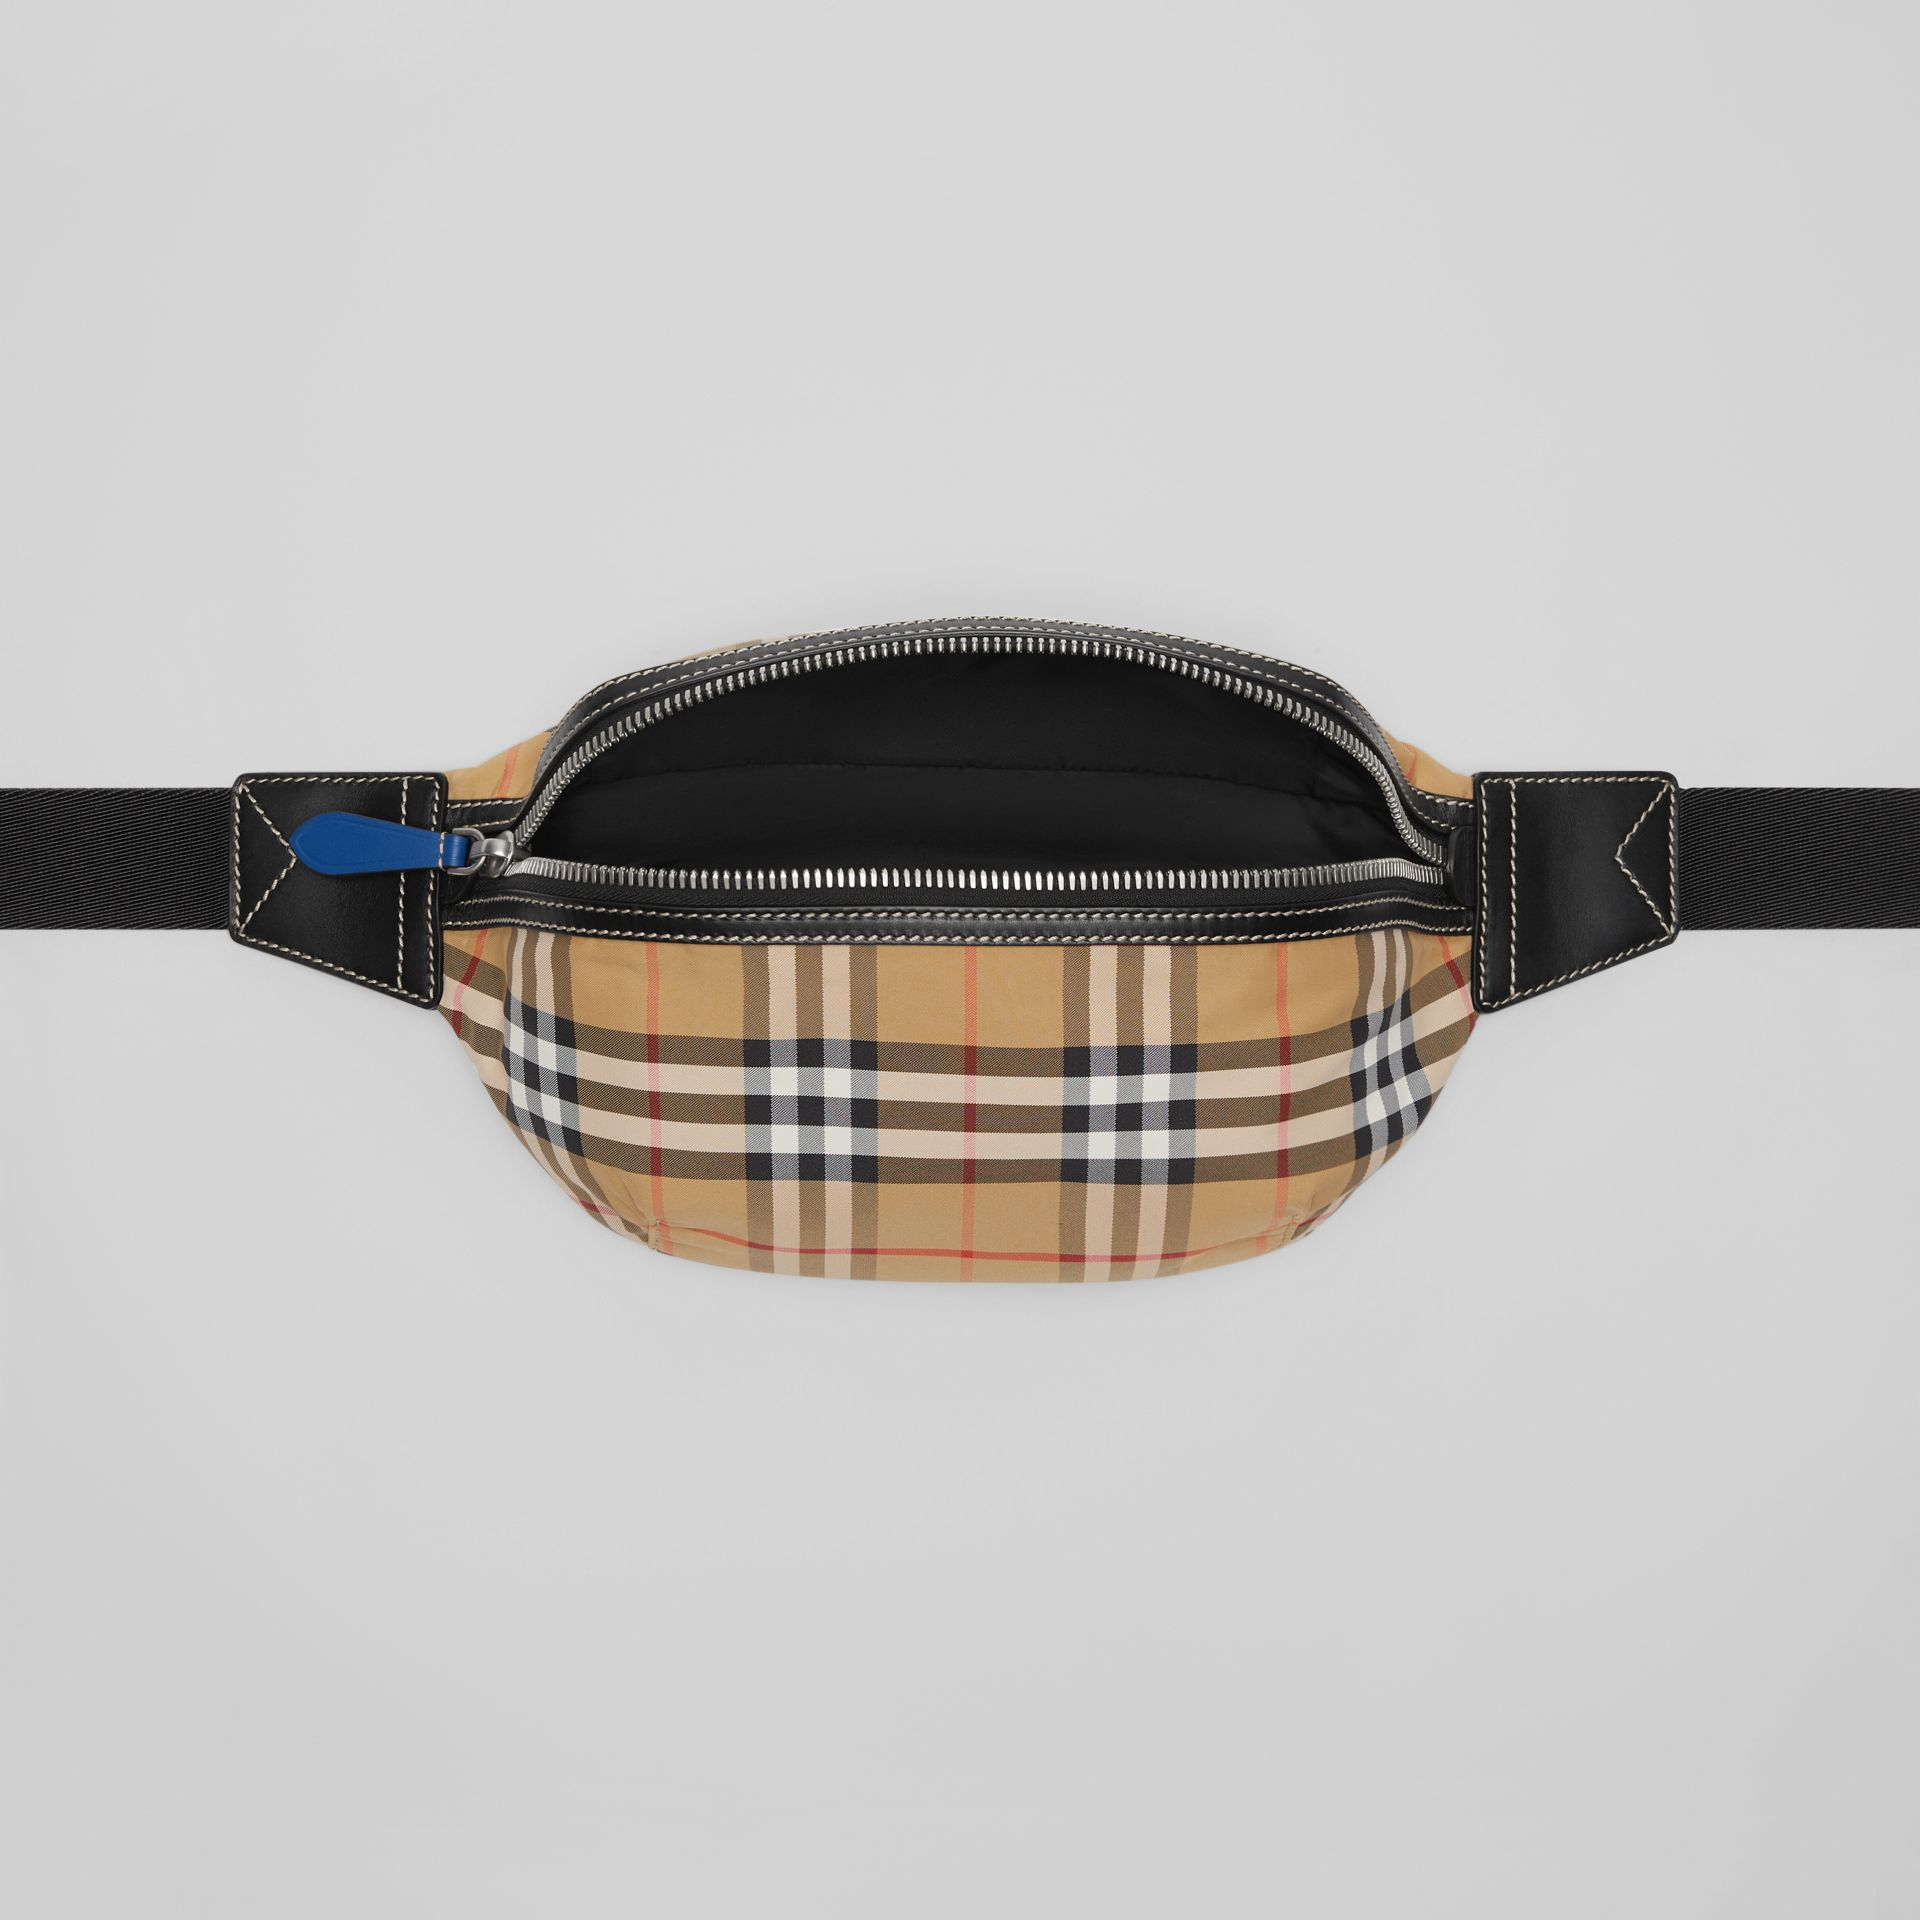 Medium Vintage Check Bum Bag in Antique Yellow | Burberry - gallery image 5